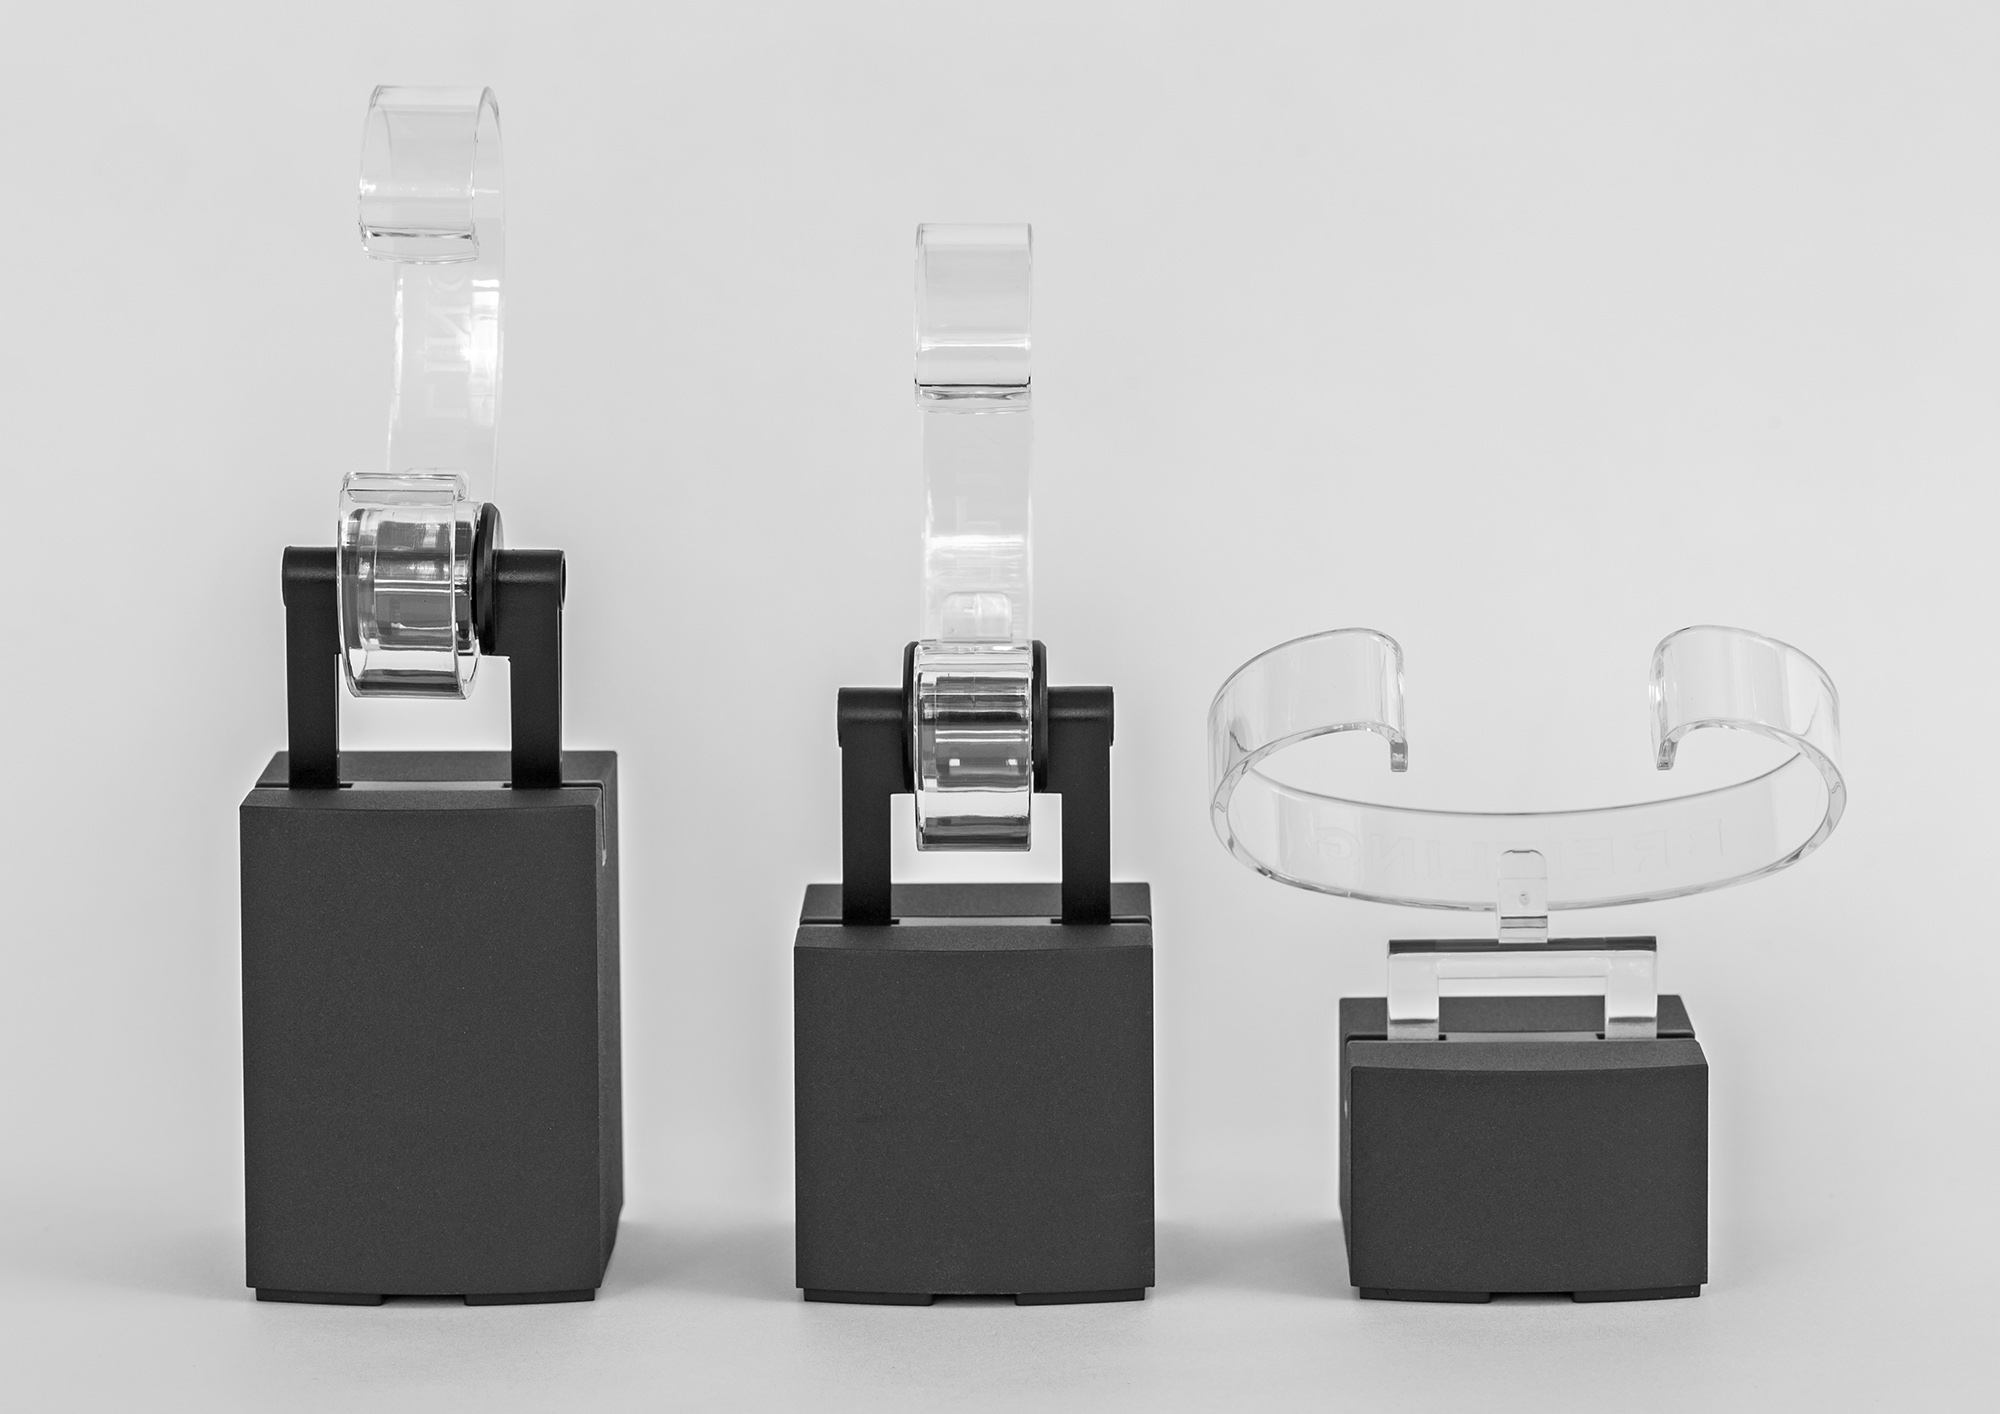 Watch Stand System 2